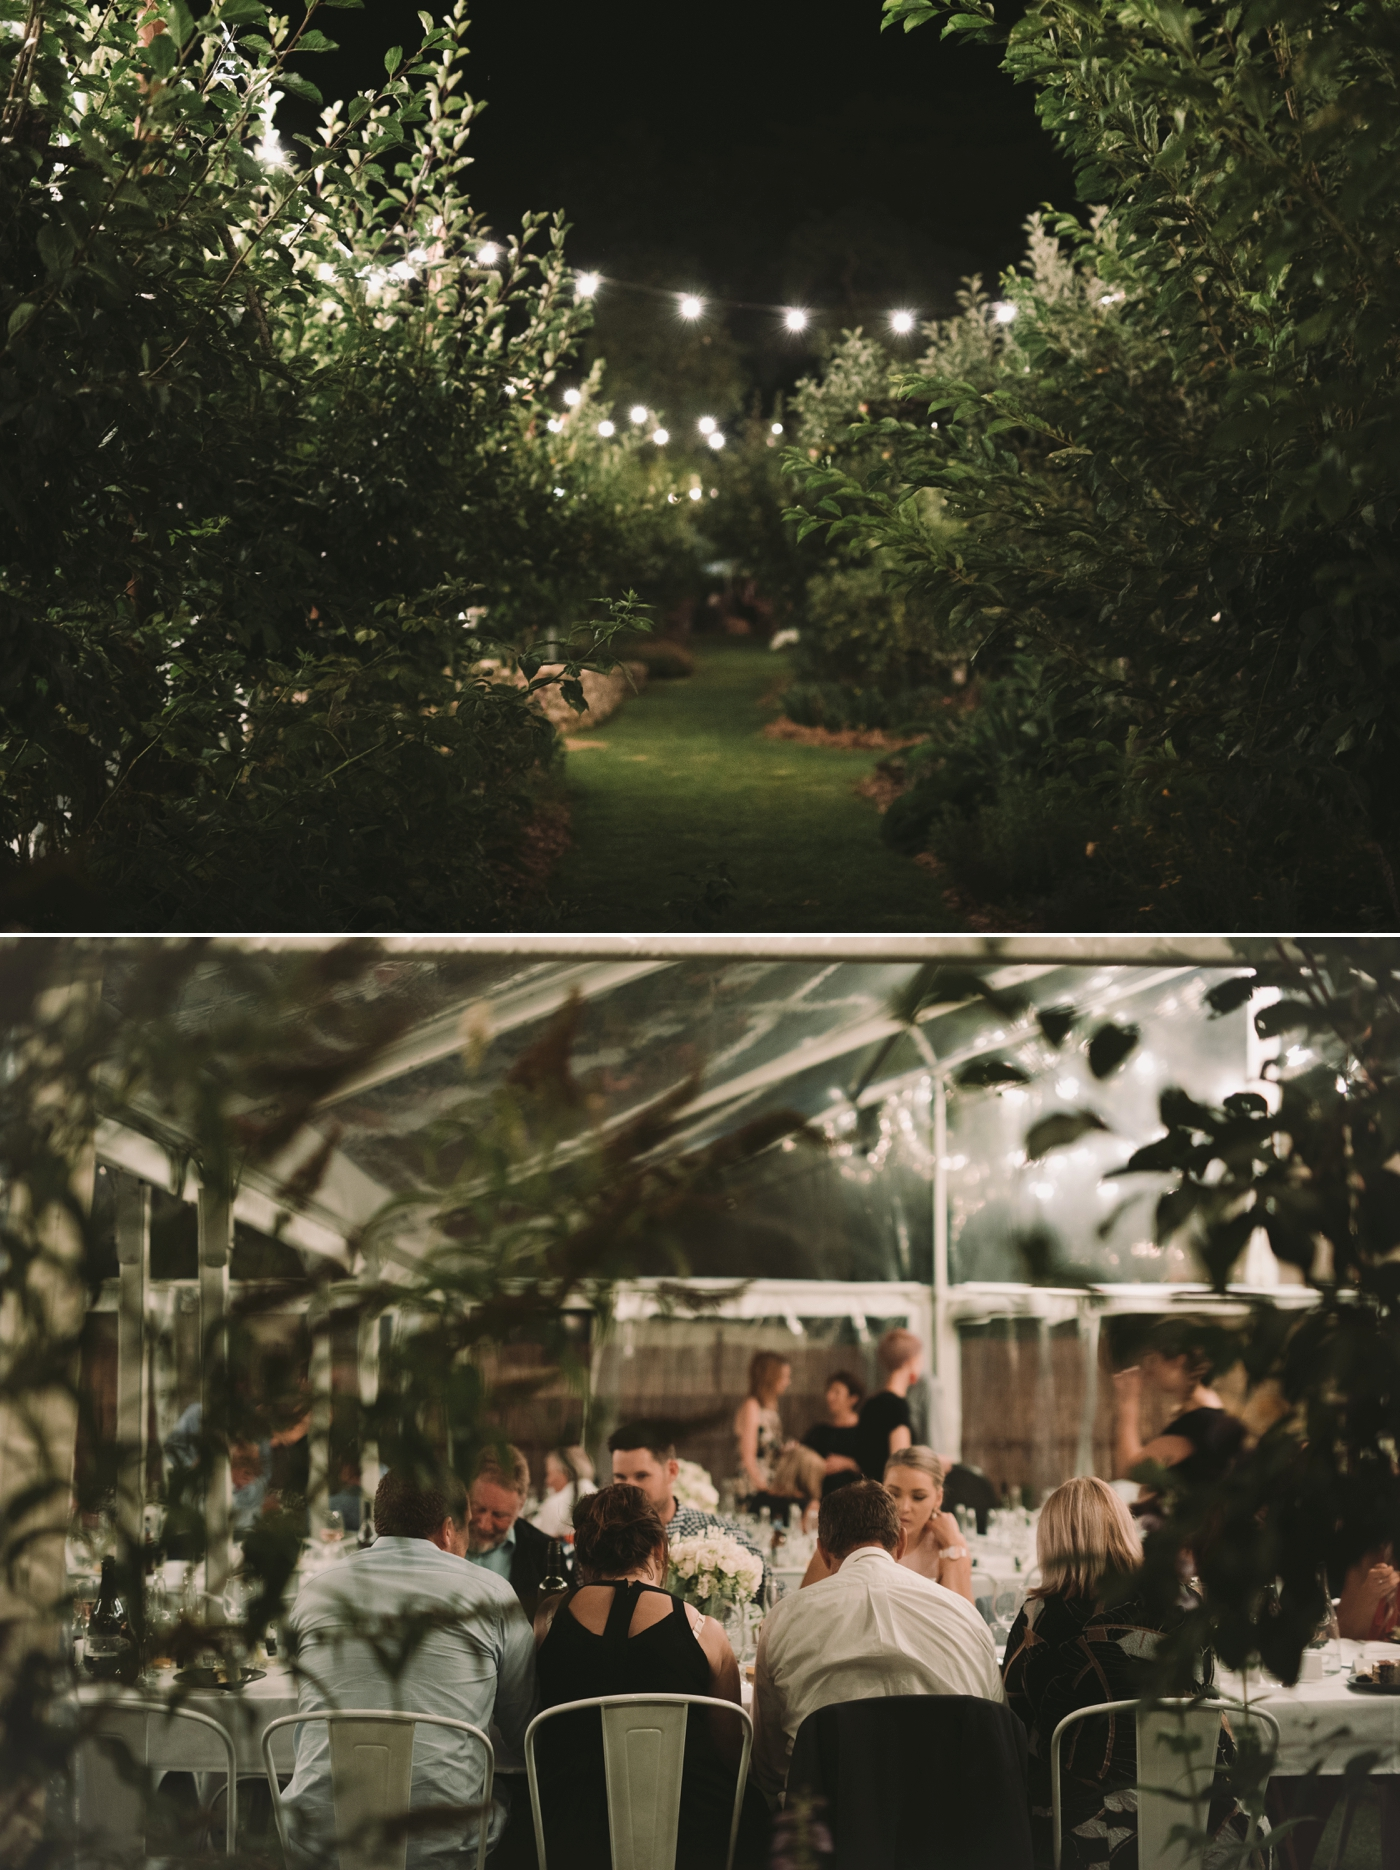 Chloe & Chris - Seasonal Garden Adelaide Wedding - The Seasonal Garden Cafe Hahndorf Wedding - Natural wedding photography in Adelaide - www.katherineschultzphotography.com_0087.jpg